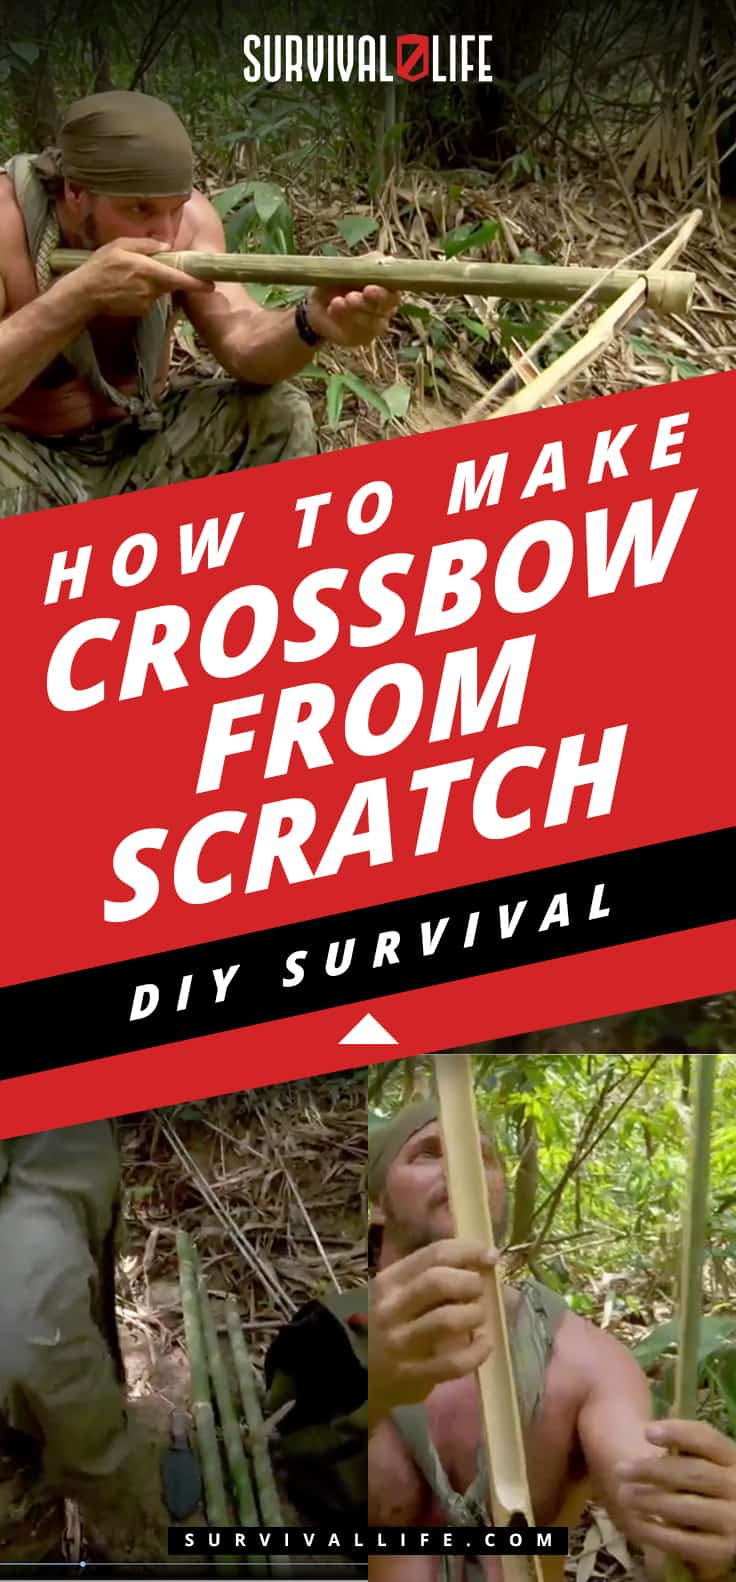 DIY Survival: How To Make A Crossbow From Scratch [Video] | https://survivallife.com/diy-survival-make-a-crossbow-from-scratch/